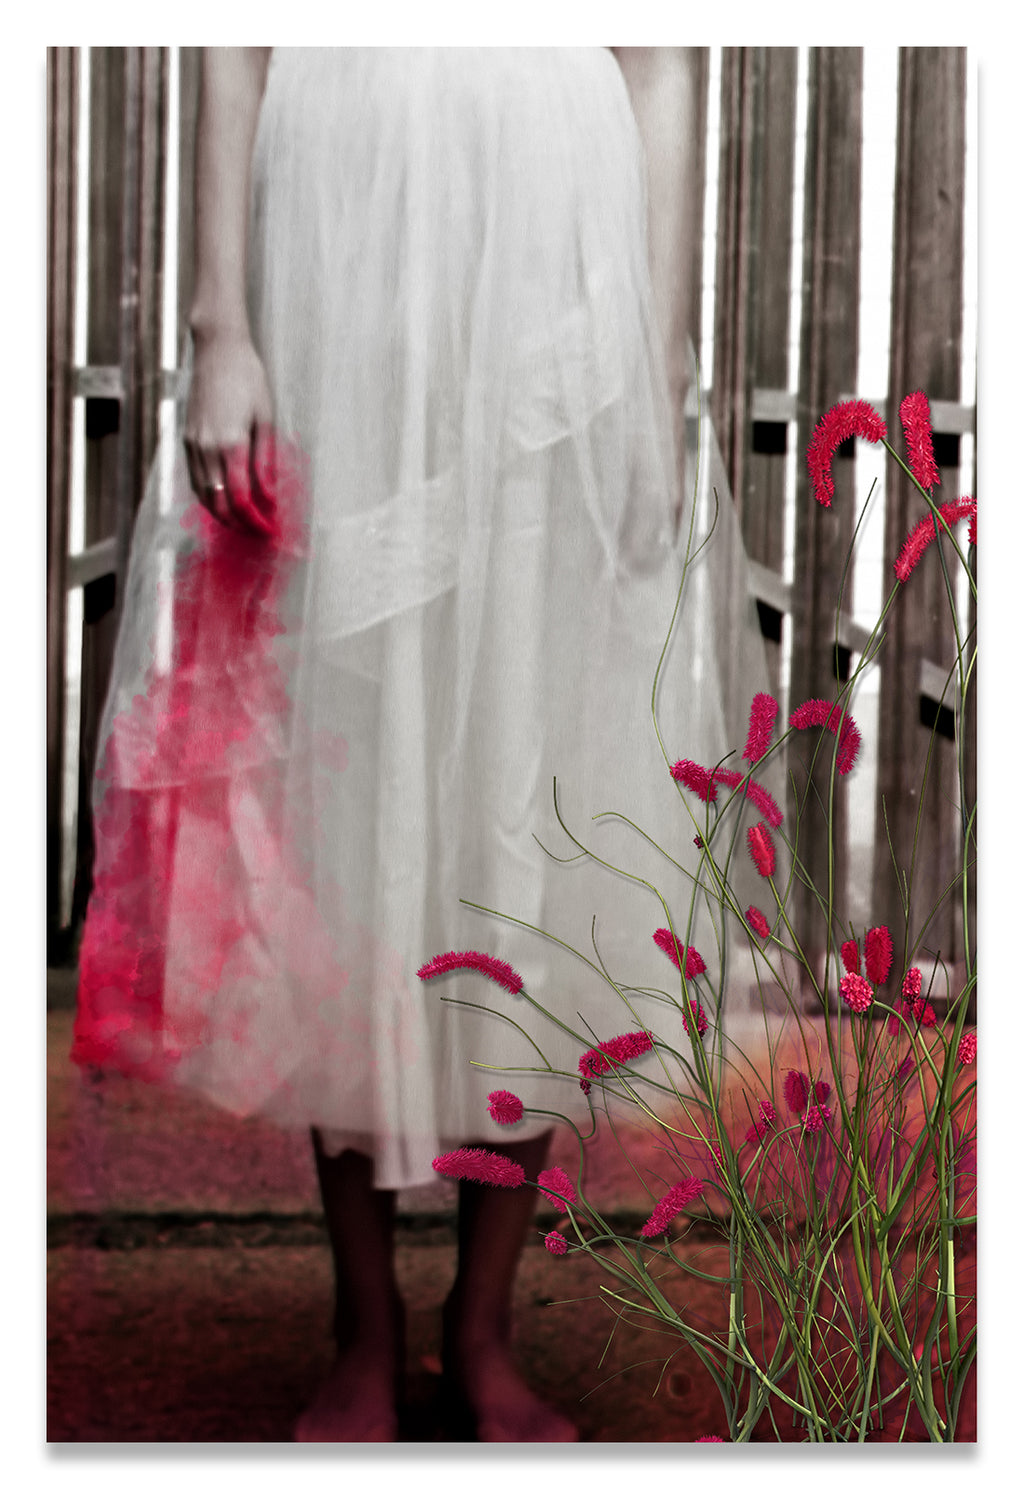 Woman in a Vintage White Lace Dress, cropped at waist, Standing With a Bloody Hand Dripping Down Her Dress in front of a Gate-Metal Print-Aluminum Print